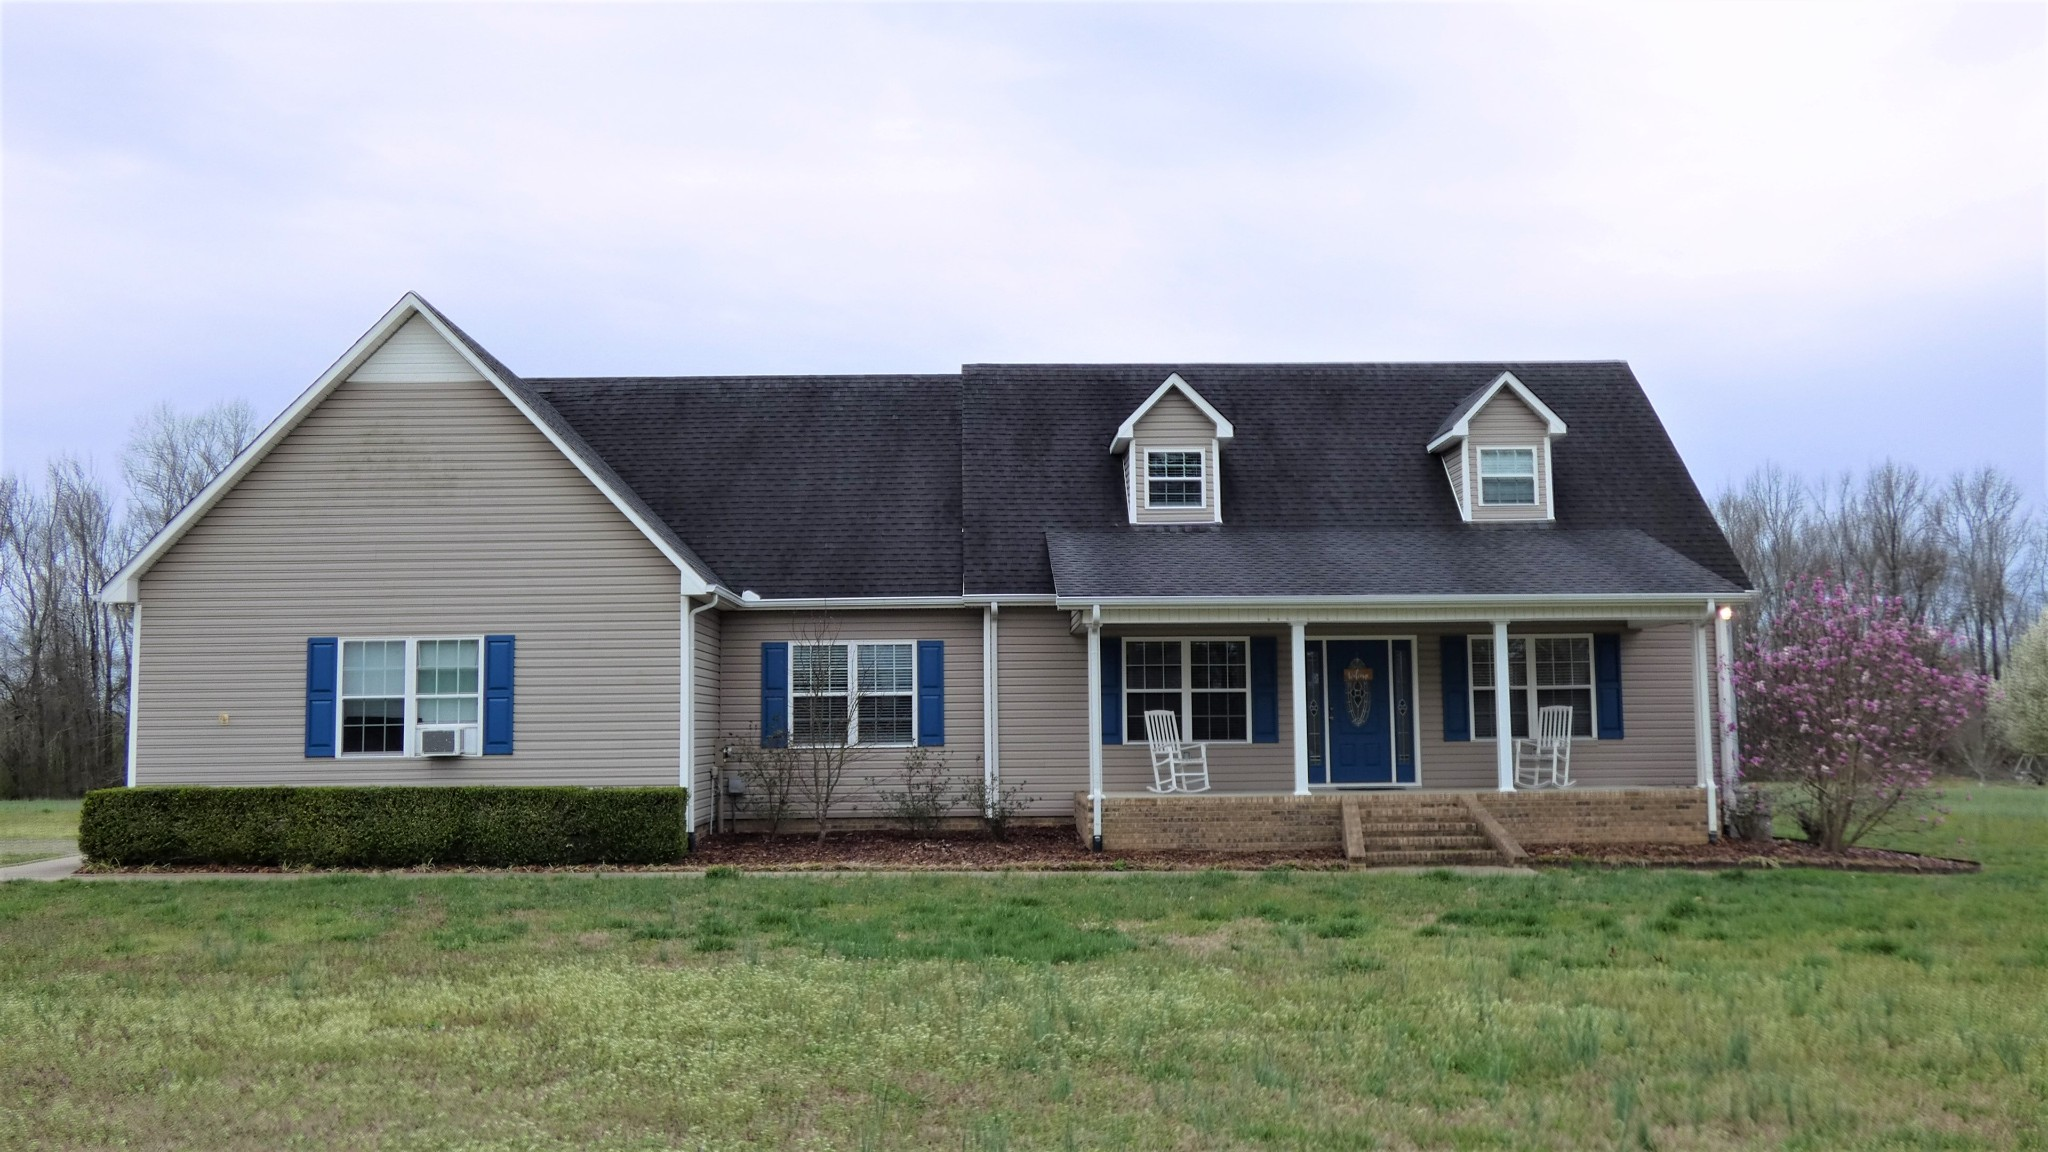 65 Lincoln Loop Rd, Flintville, TN 37335 - Flintville, TN real estate listing